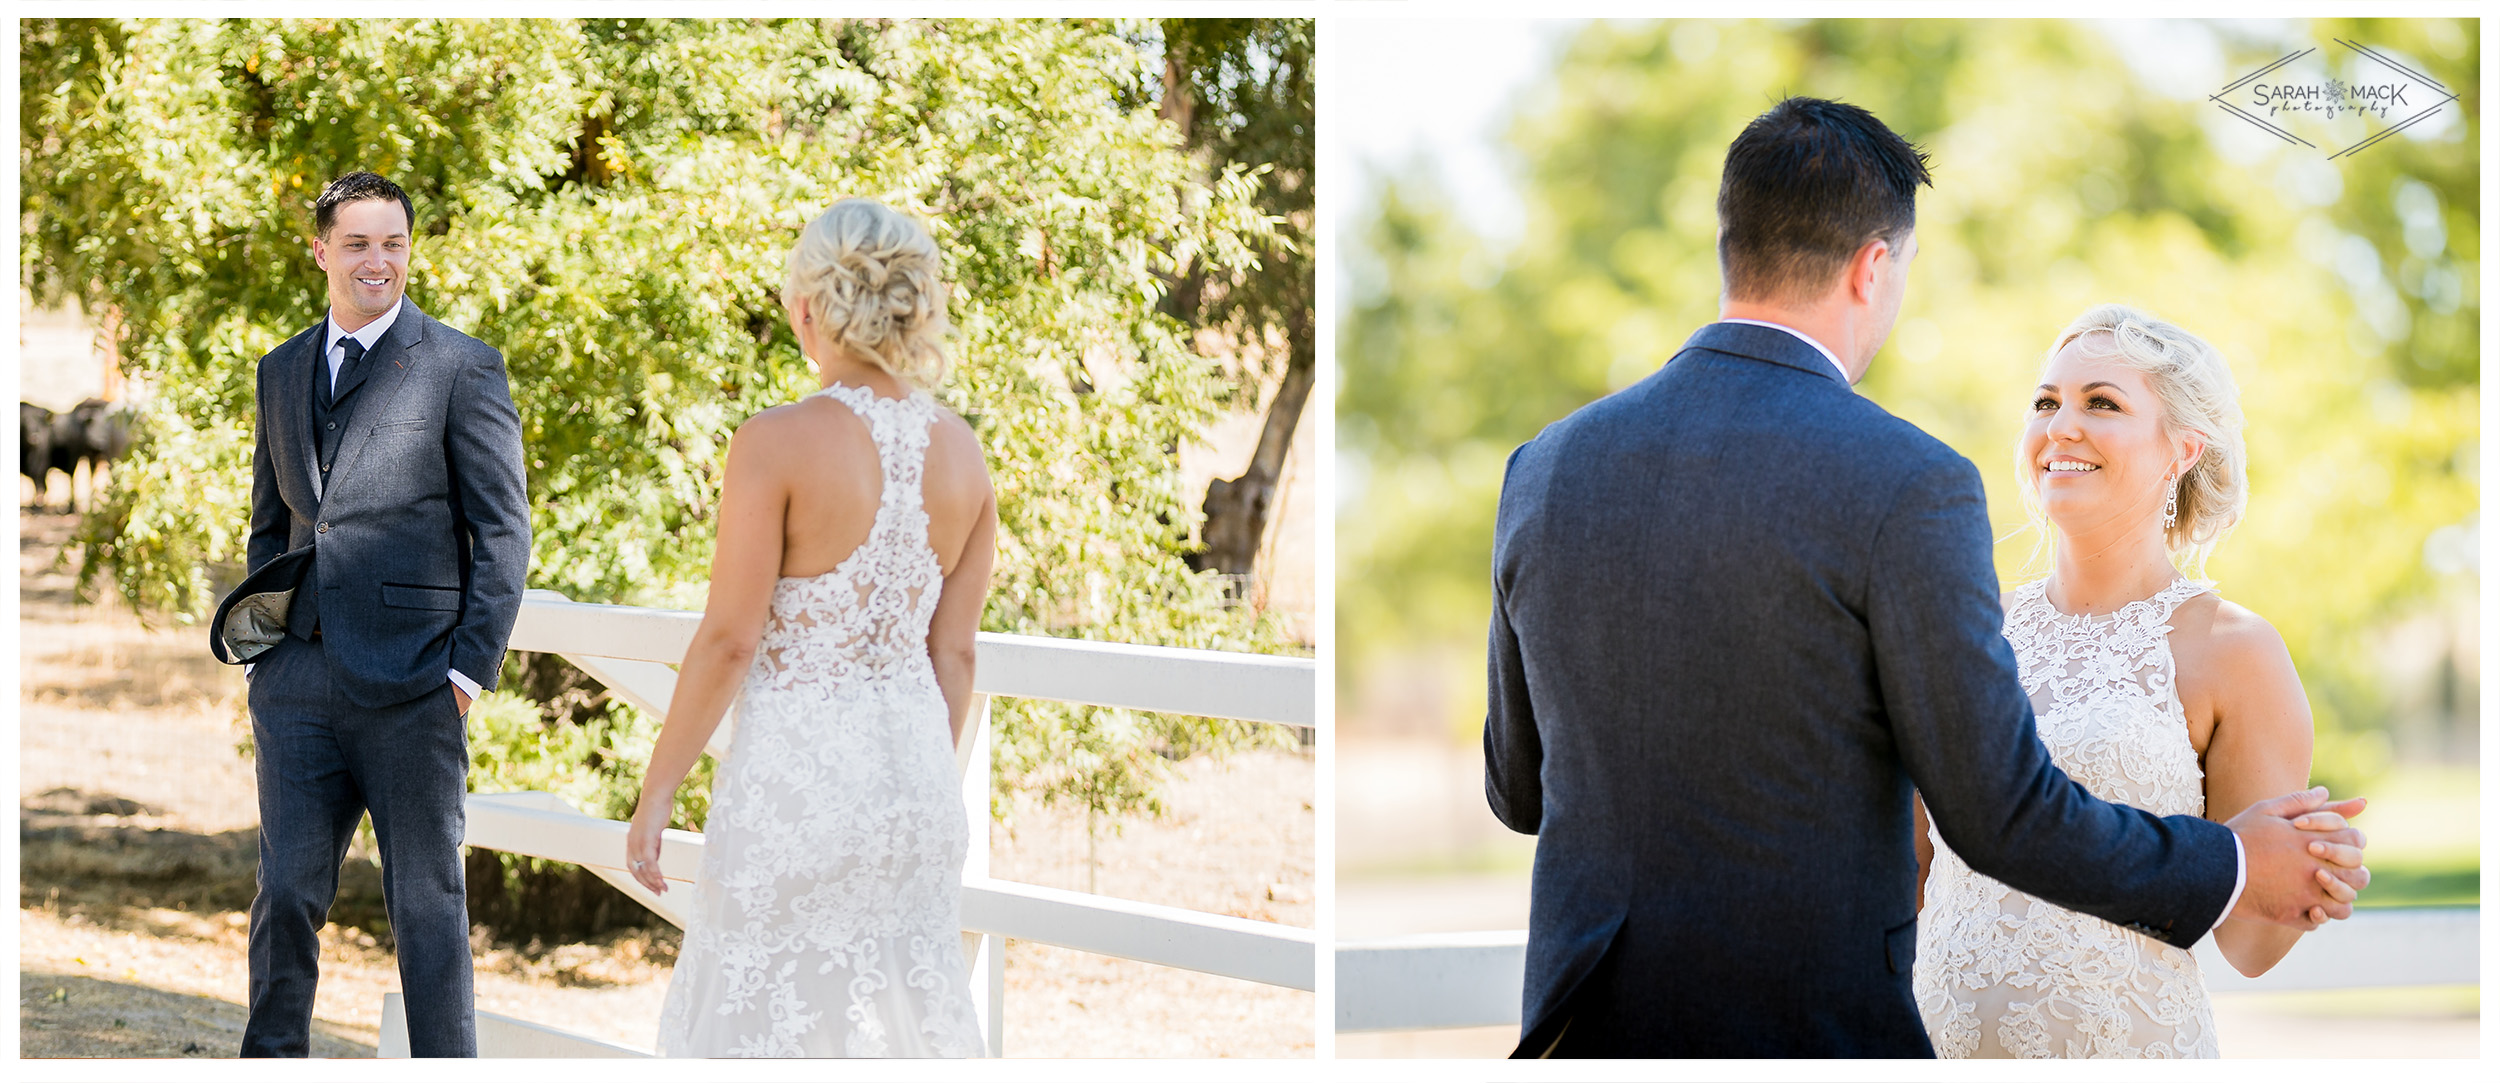 MA-Chandler-Ranch-Paso-Robles-Wedding-Photography-34.jpg